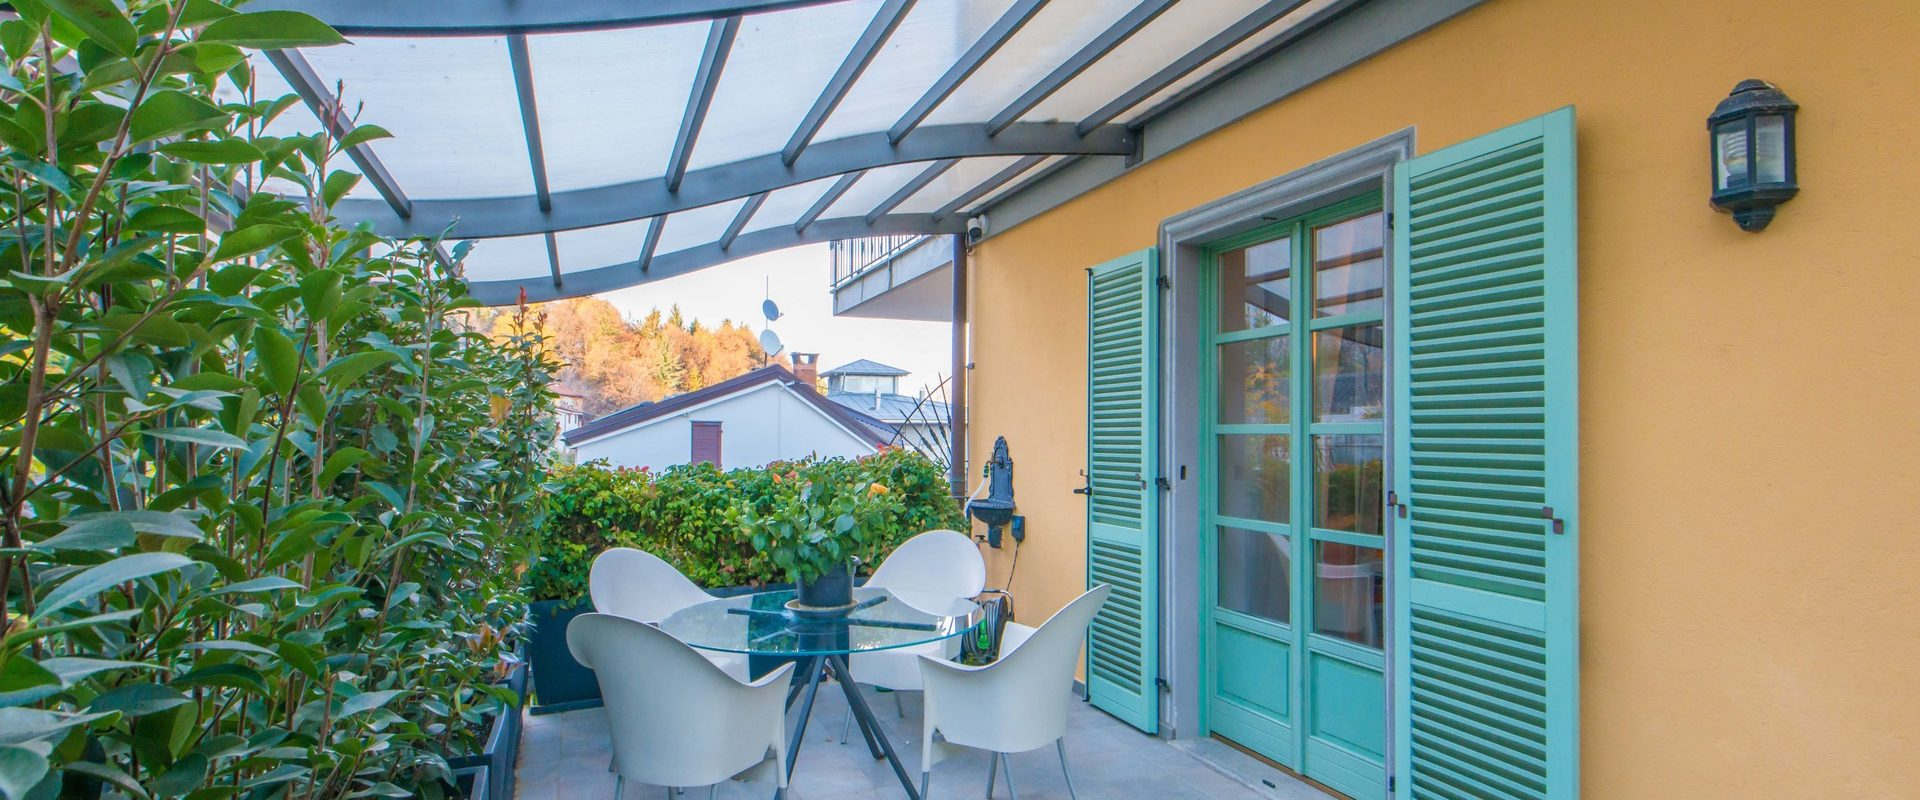 Cuneo – The privacy of your apartment in the greenery of the city